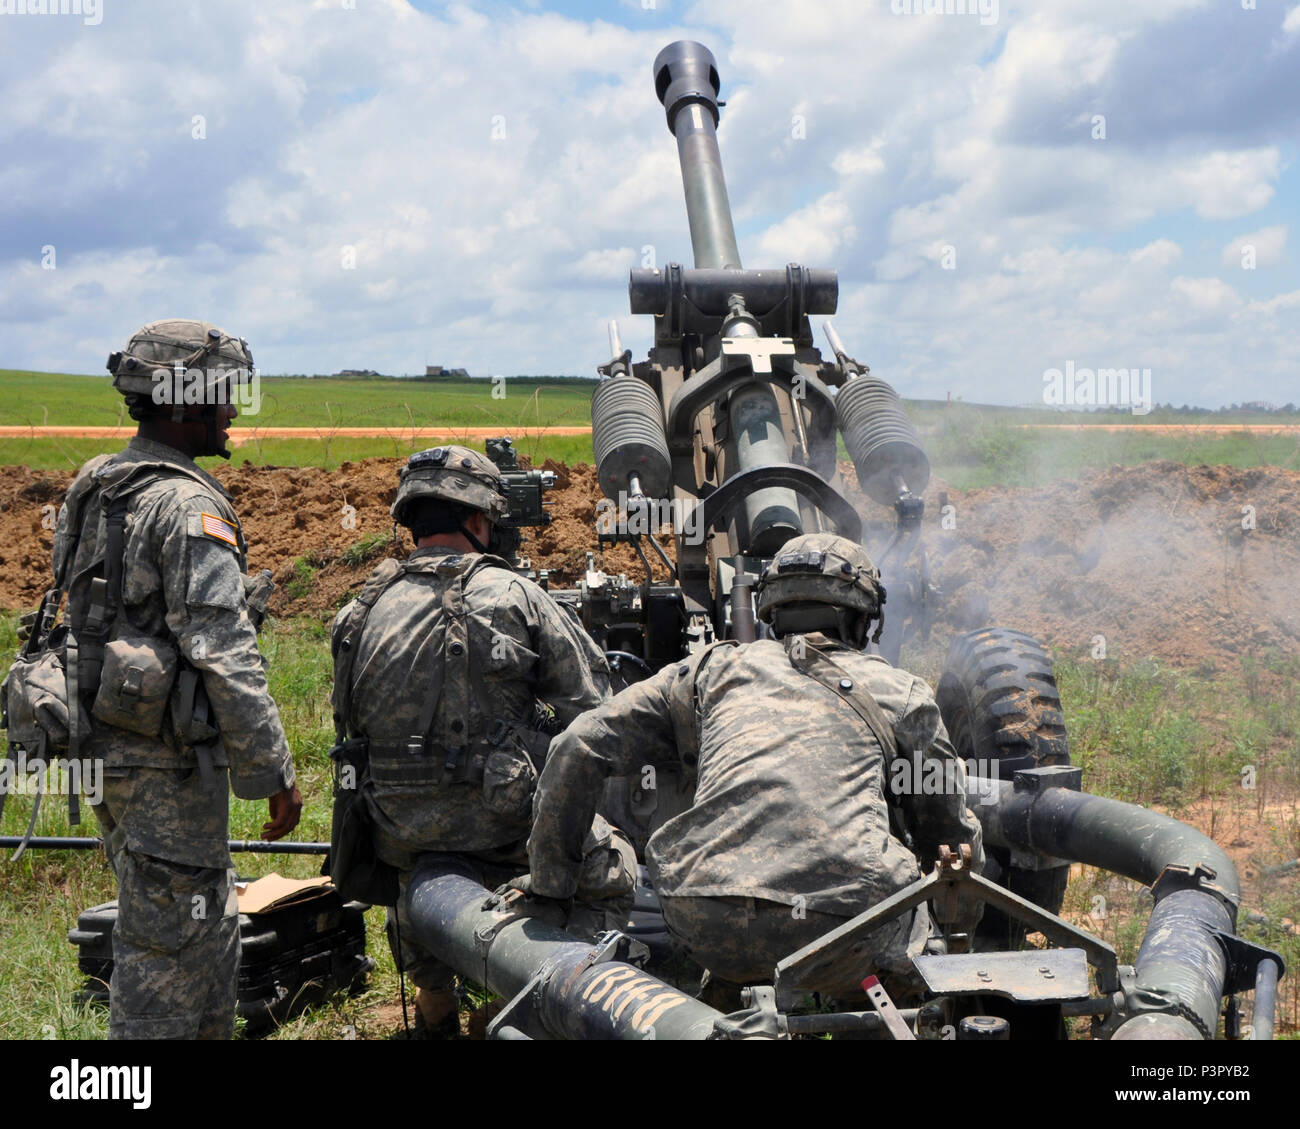 New York Army National Guard Soldiers assigned to Gun 8, Bravo Battery, 1st Battalion, 258th Field Artillery, based in Bronx, N.Y., fire their M119 Howitzer during training at the Joint Readiness Training Center, Ft. Polk, La., July 26, 2016. Approximately 3,000 Soldiers from New York joined 2,000 other state Army National Guard units, active Army and Army Reserve troops as part of the 27th Infantry Brigade Combat Team task force.  The Soldiers are honing their skills and practicing integrating combat operations ranging from infantry troops engaging in close combat with an enemy and employing  Stock Photo